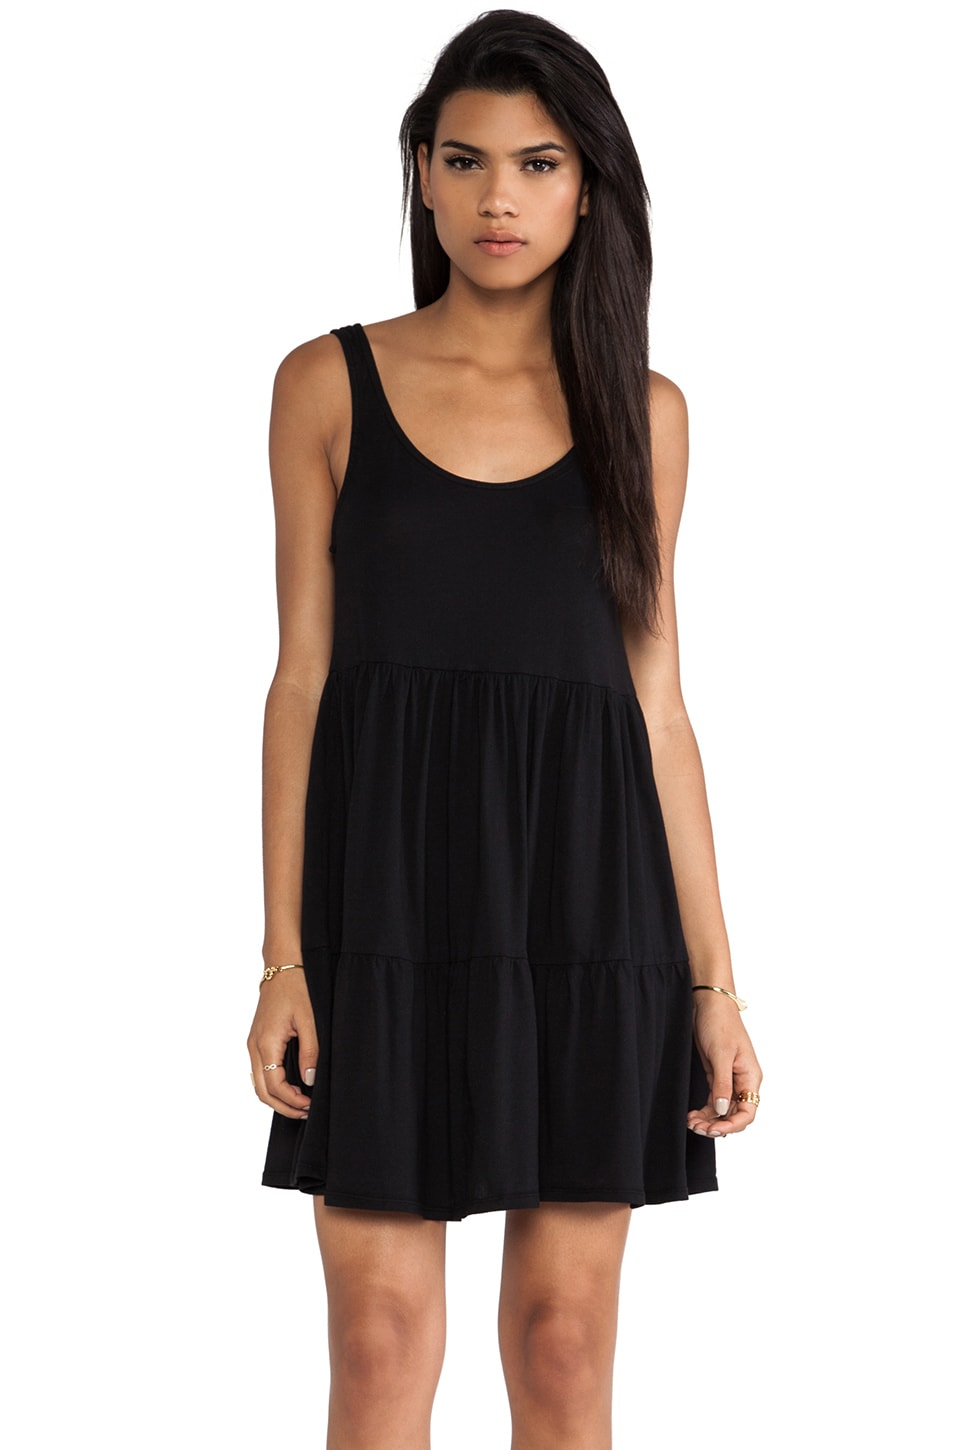 Bobi Light Weight Jersey Swing Dress in Black